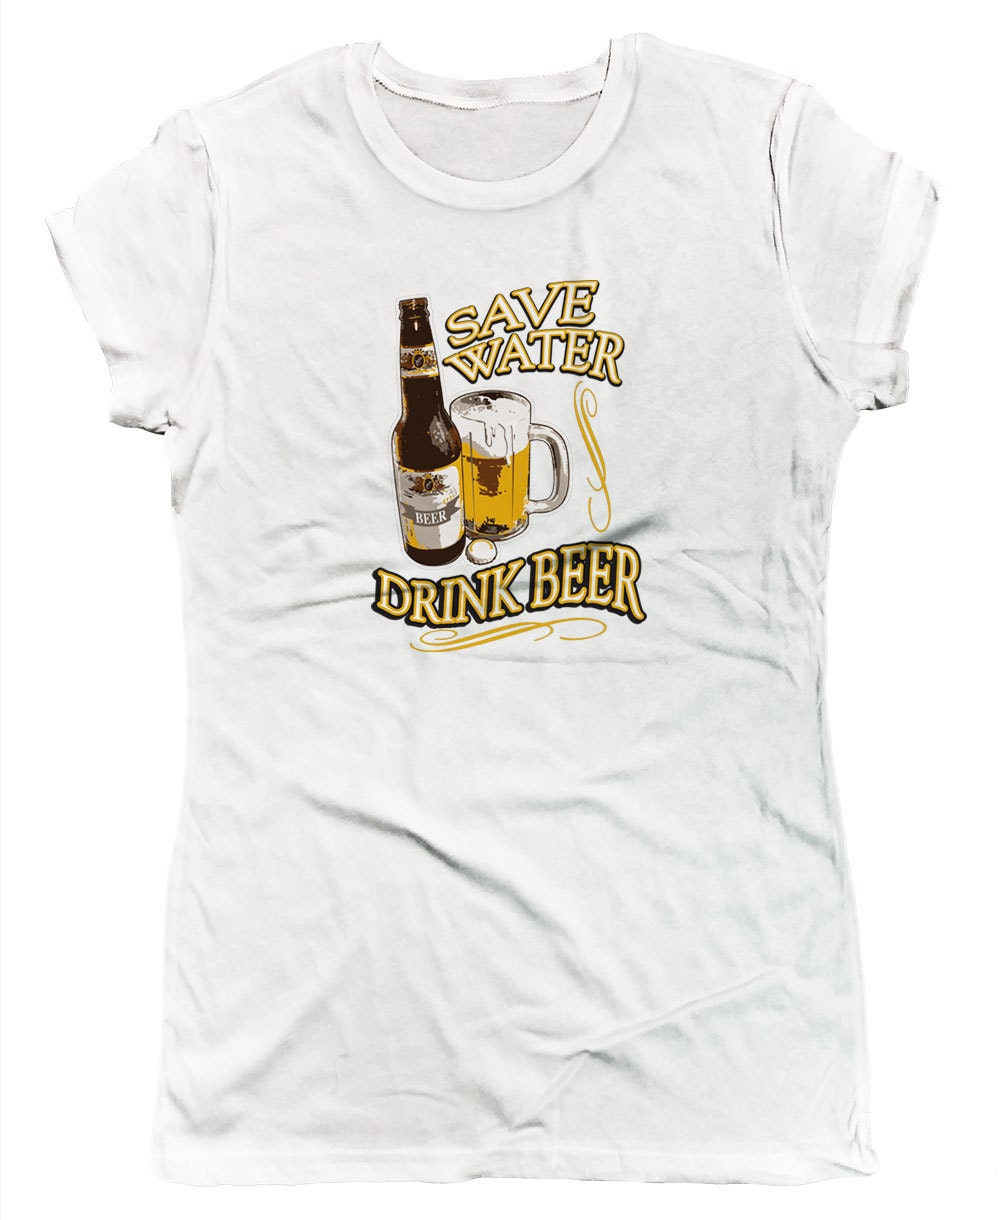 c1bbd0d829 Funny Drinking Shirts Sayings - Cotswold Hire